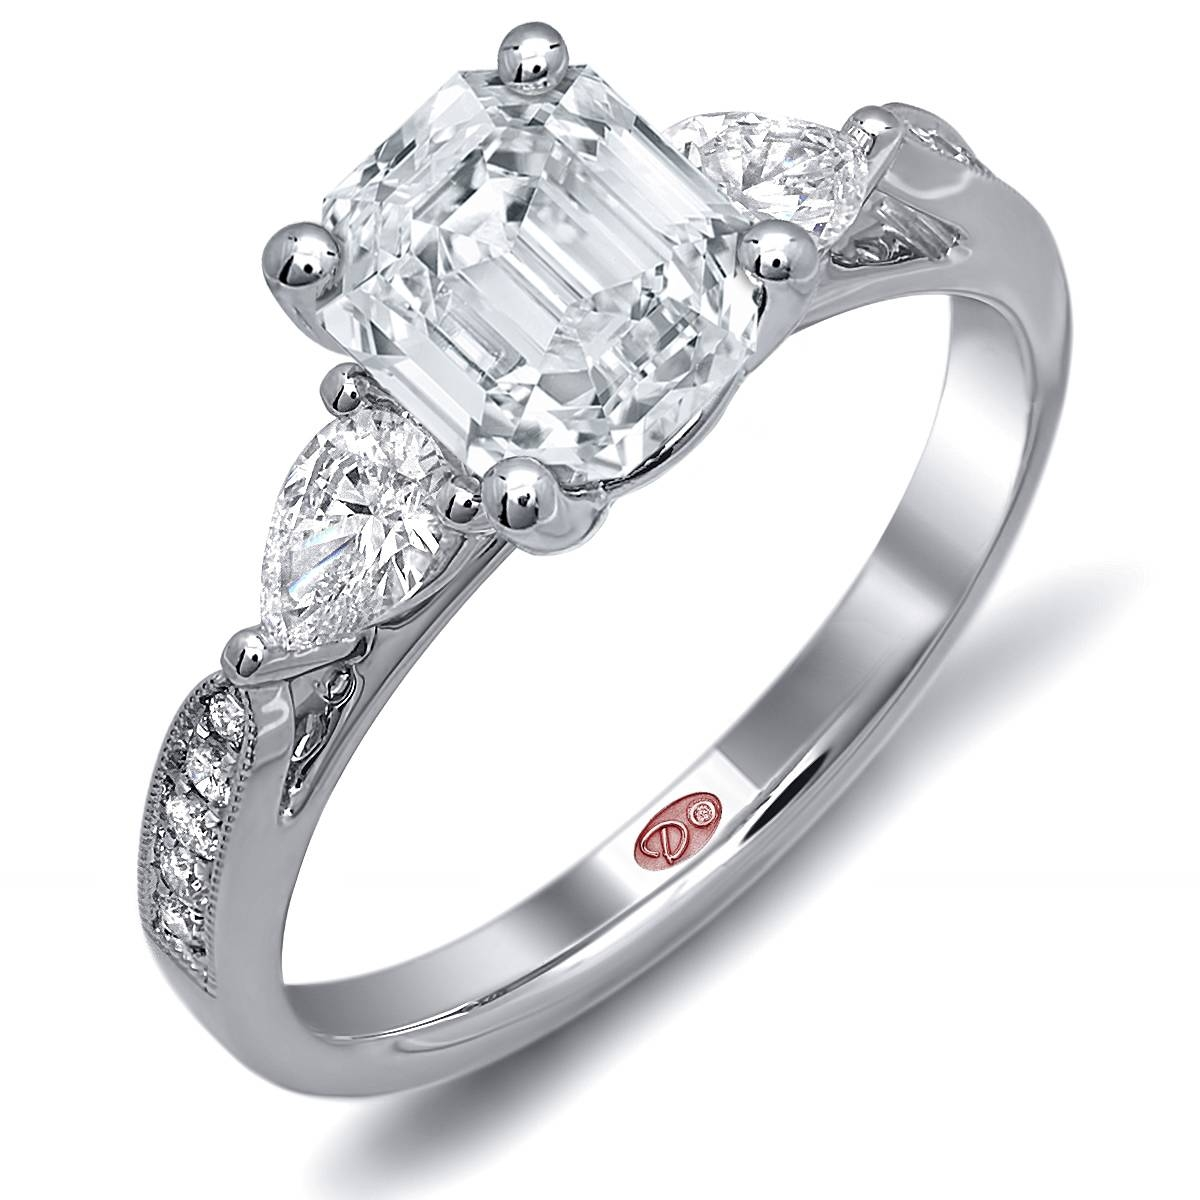 Unicorn Jewelry & Watch Boutique | Princess Cut Engagement Ring Throughout San Diego Engagement Rings (View 9 of 15)